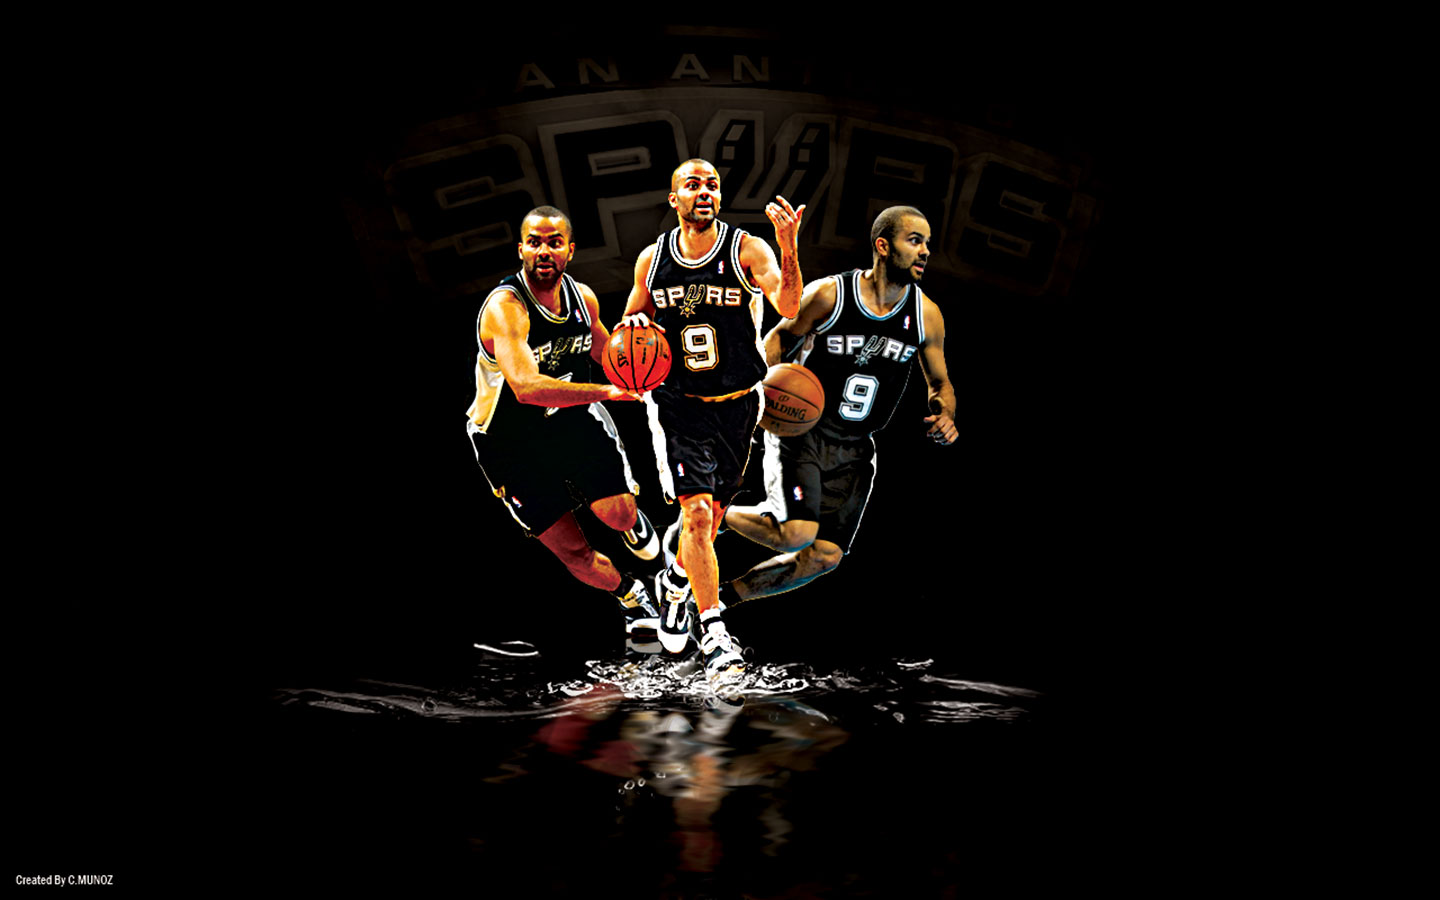 BADBOYS DELUXE: TONY PARKER - NBA - SAN ANTONIO SPURS